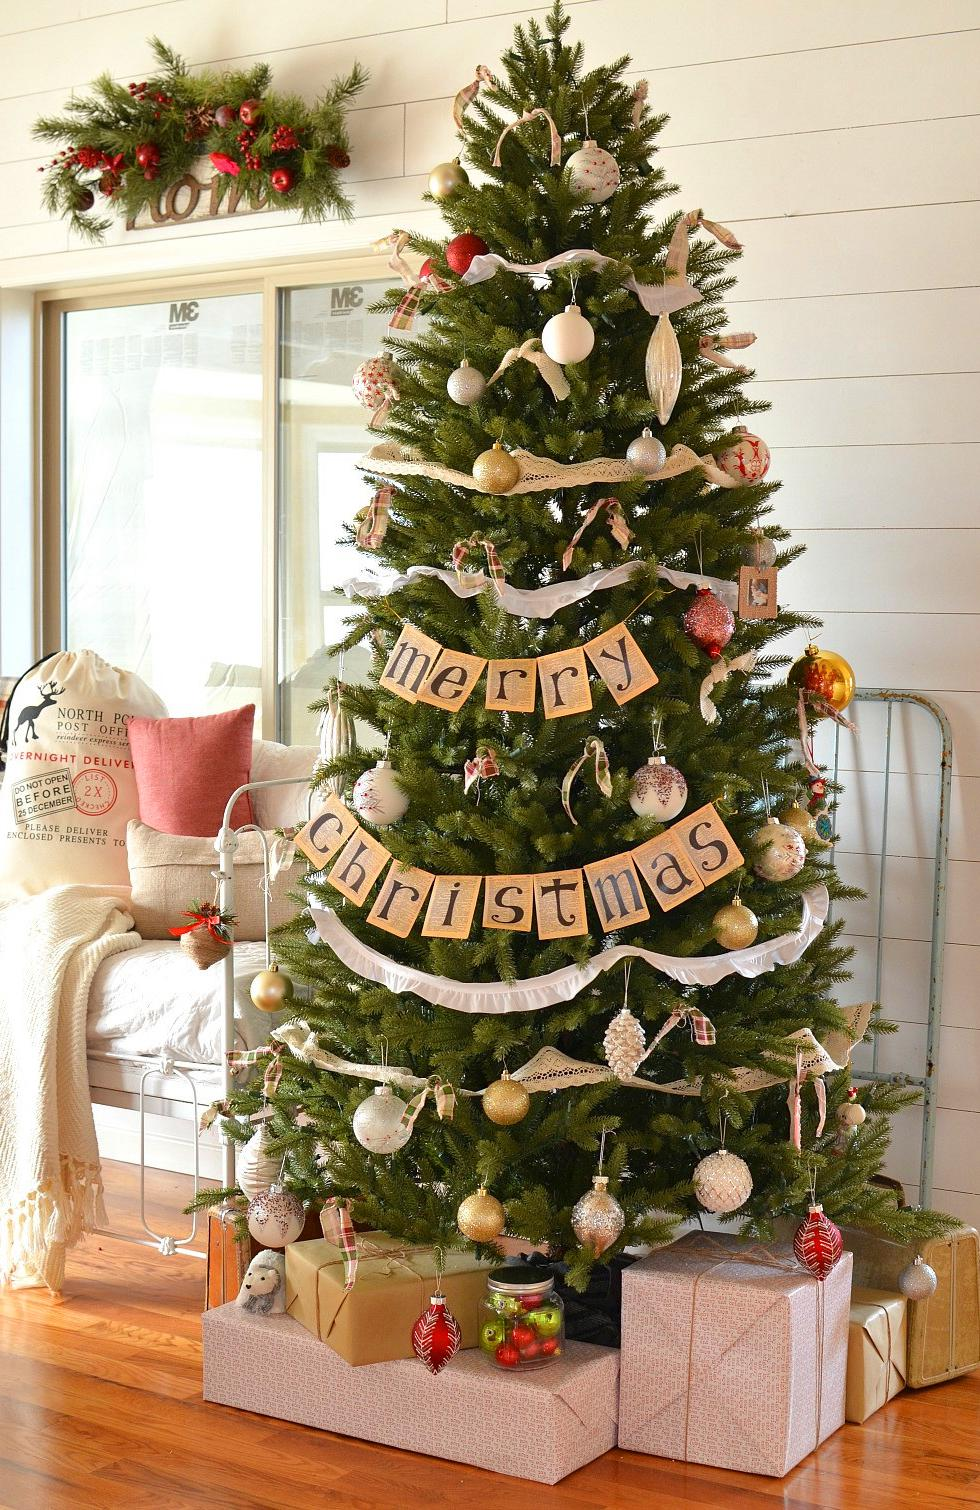 65+ Pretty DIY Christmas Tree Decor Ideas